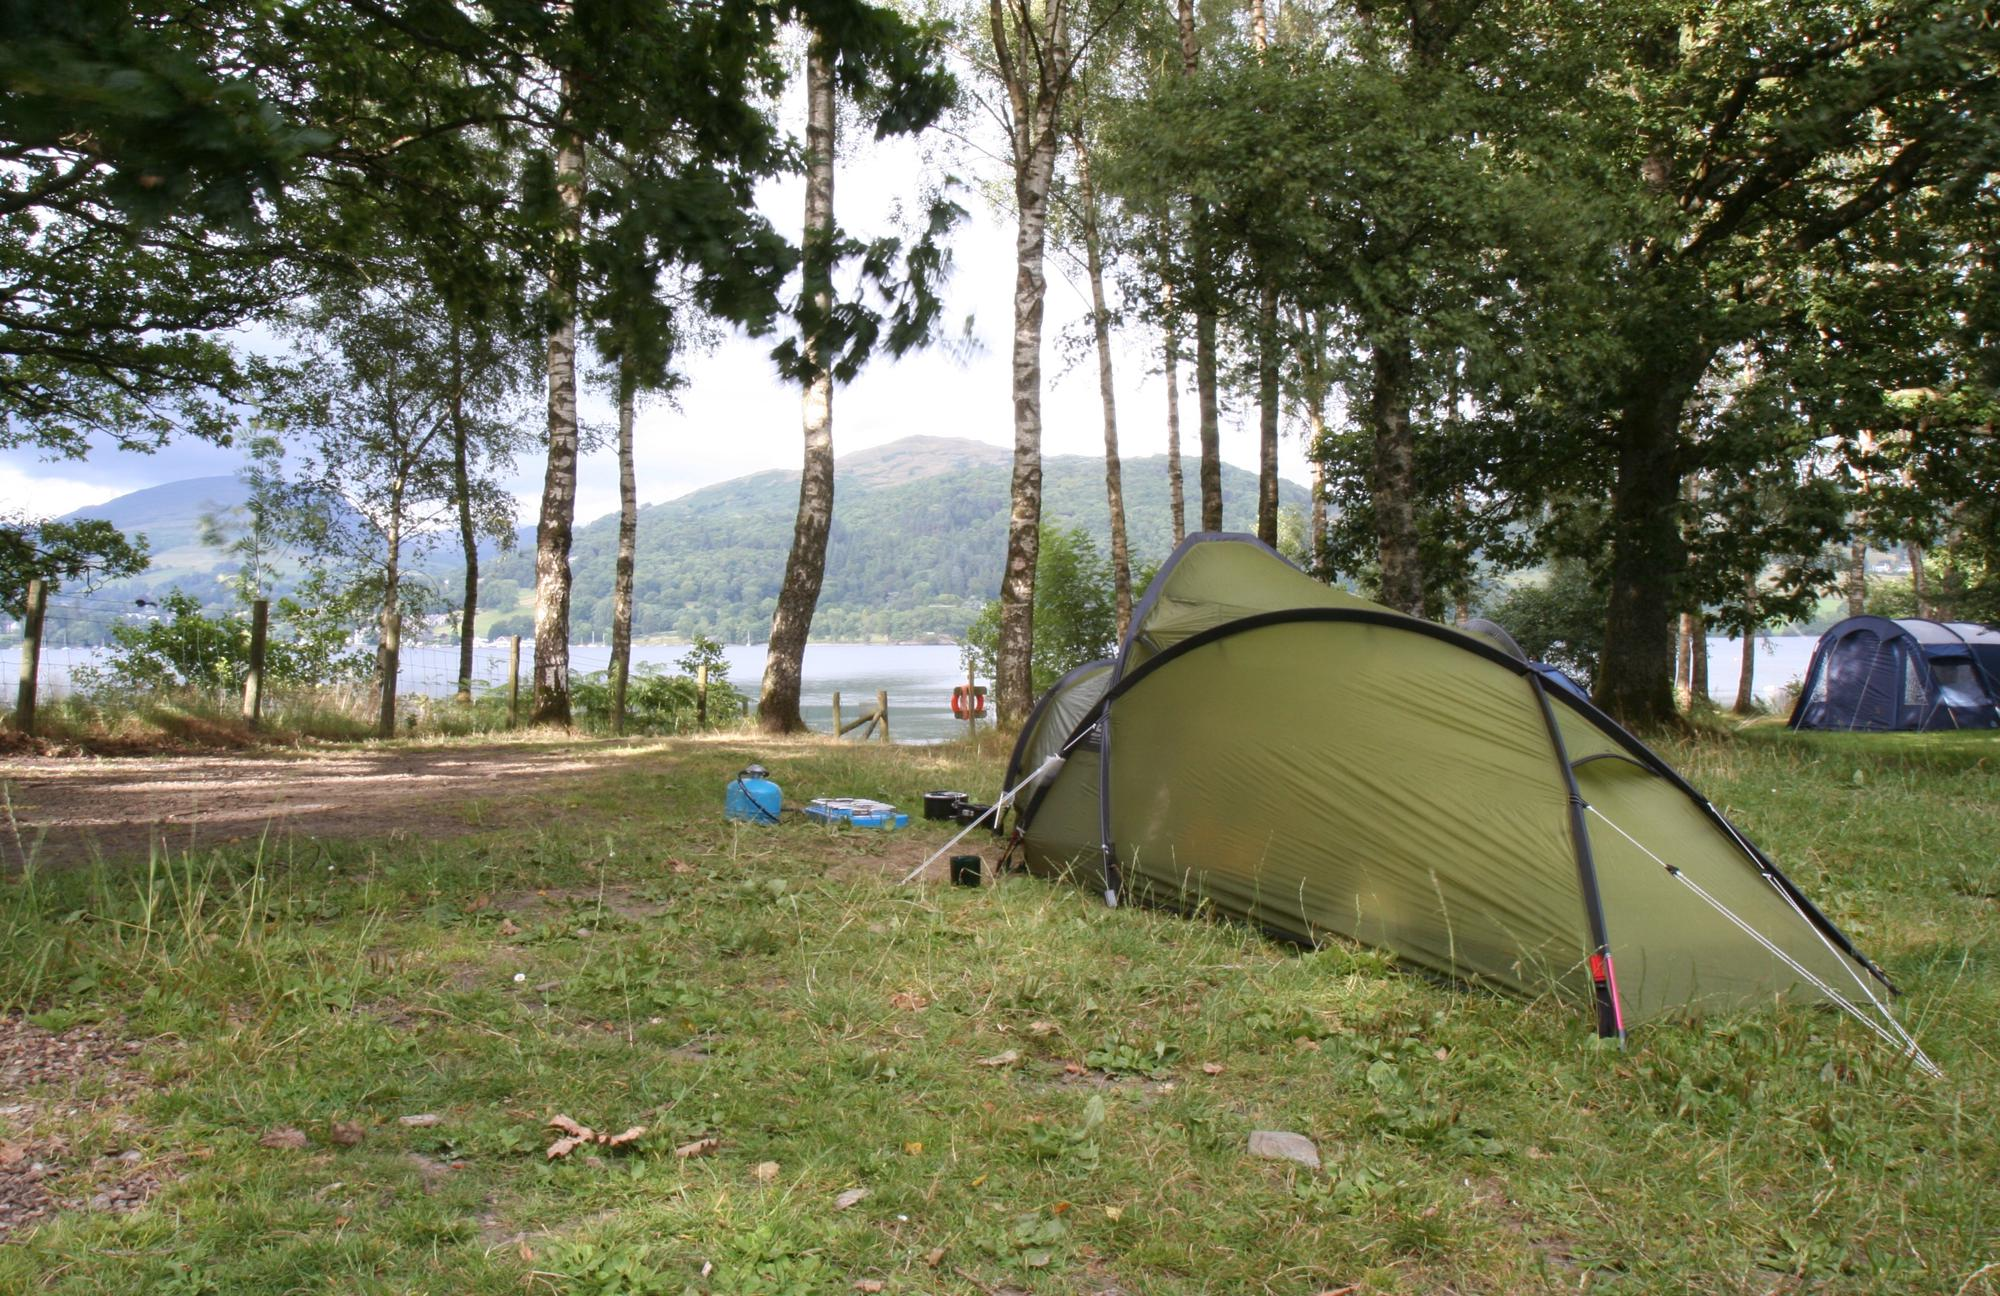 Windermere Camping – Campsites near Windermere, Lake District